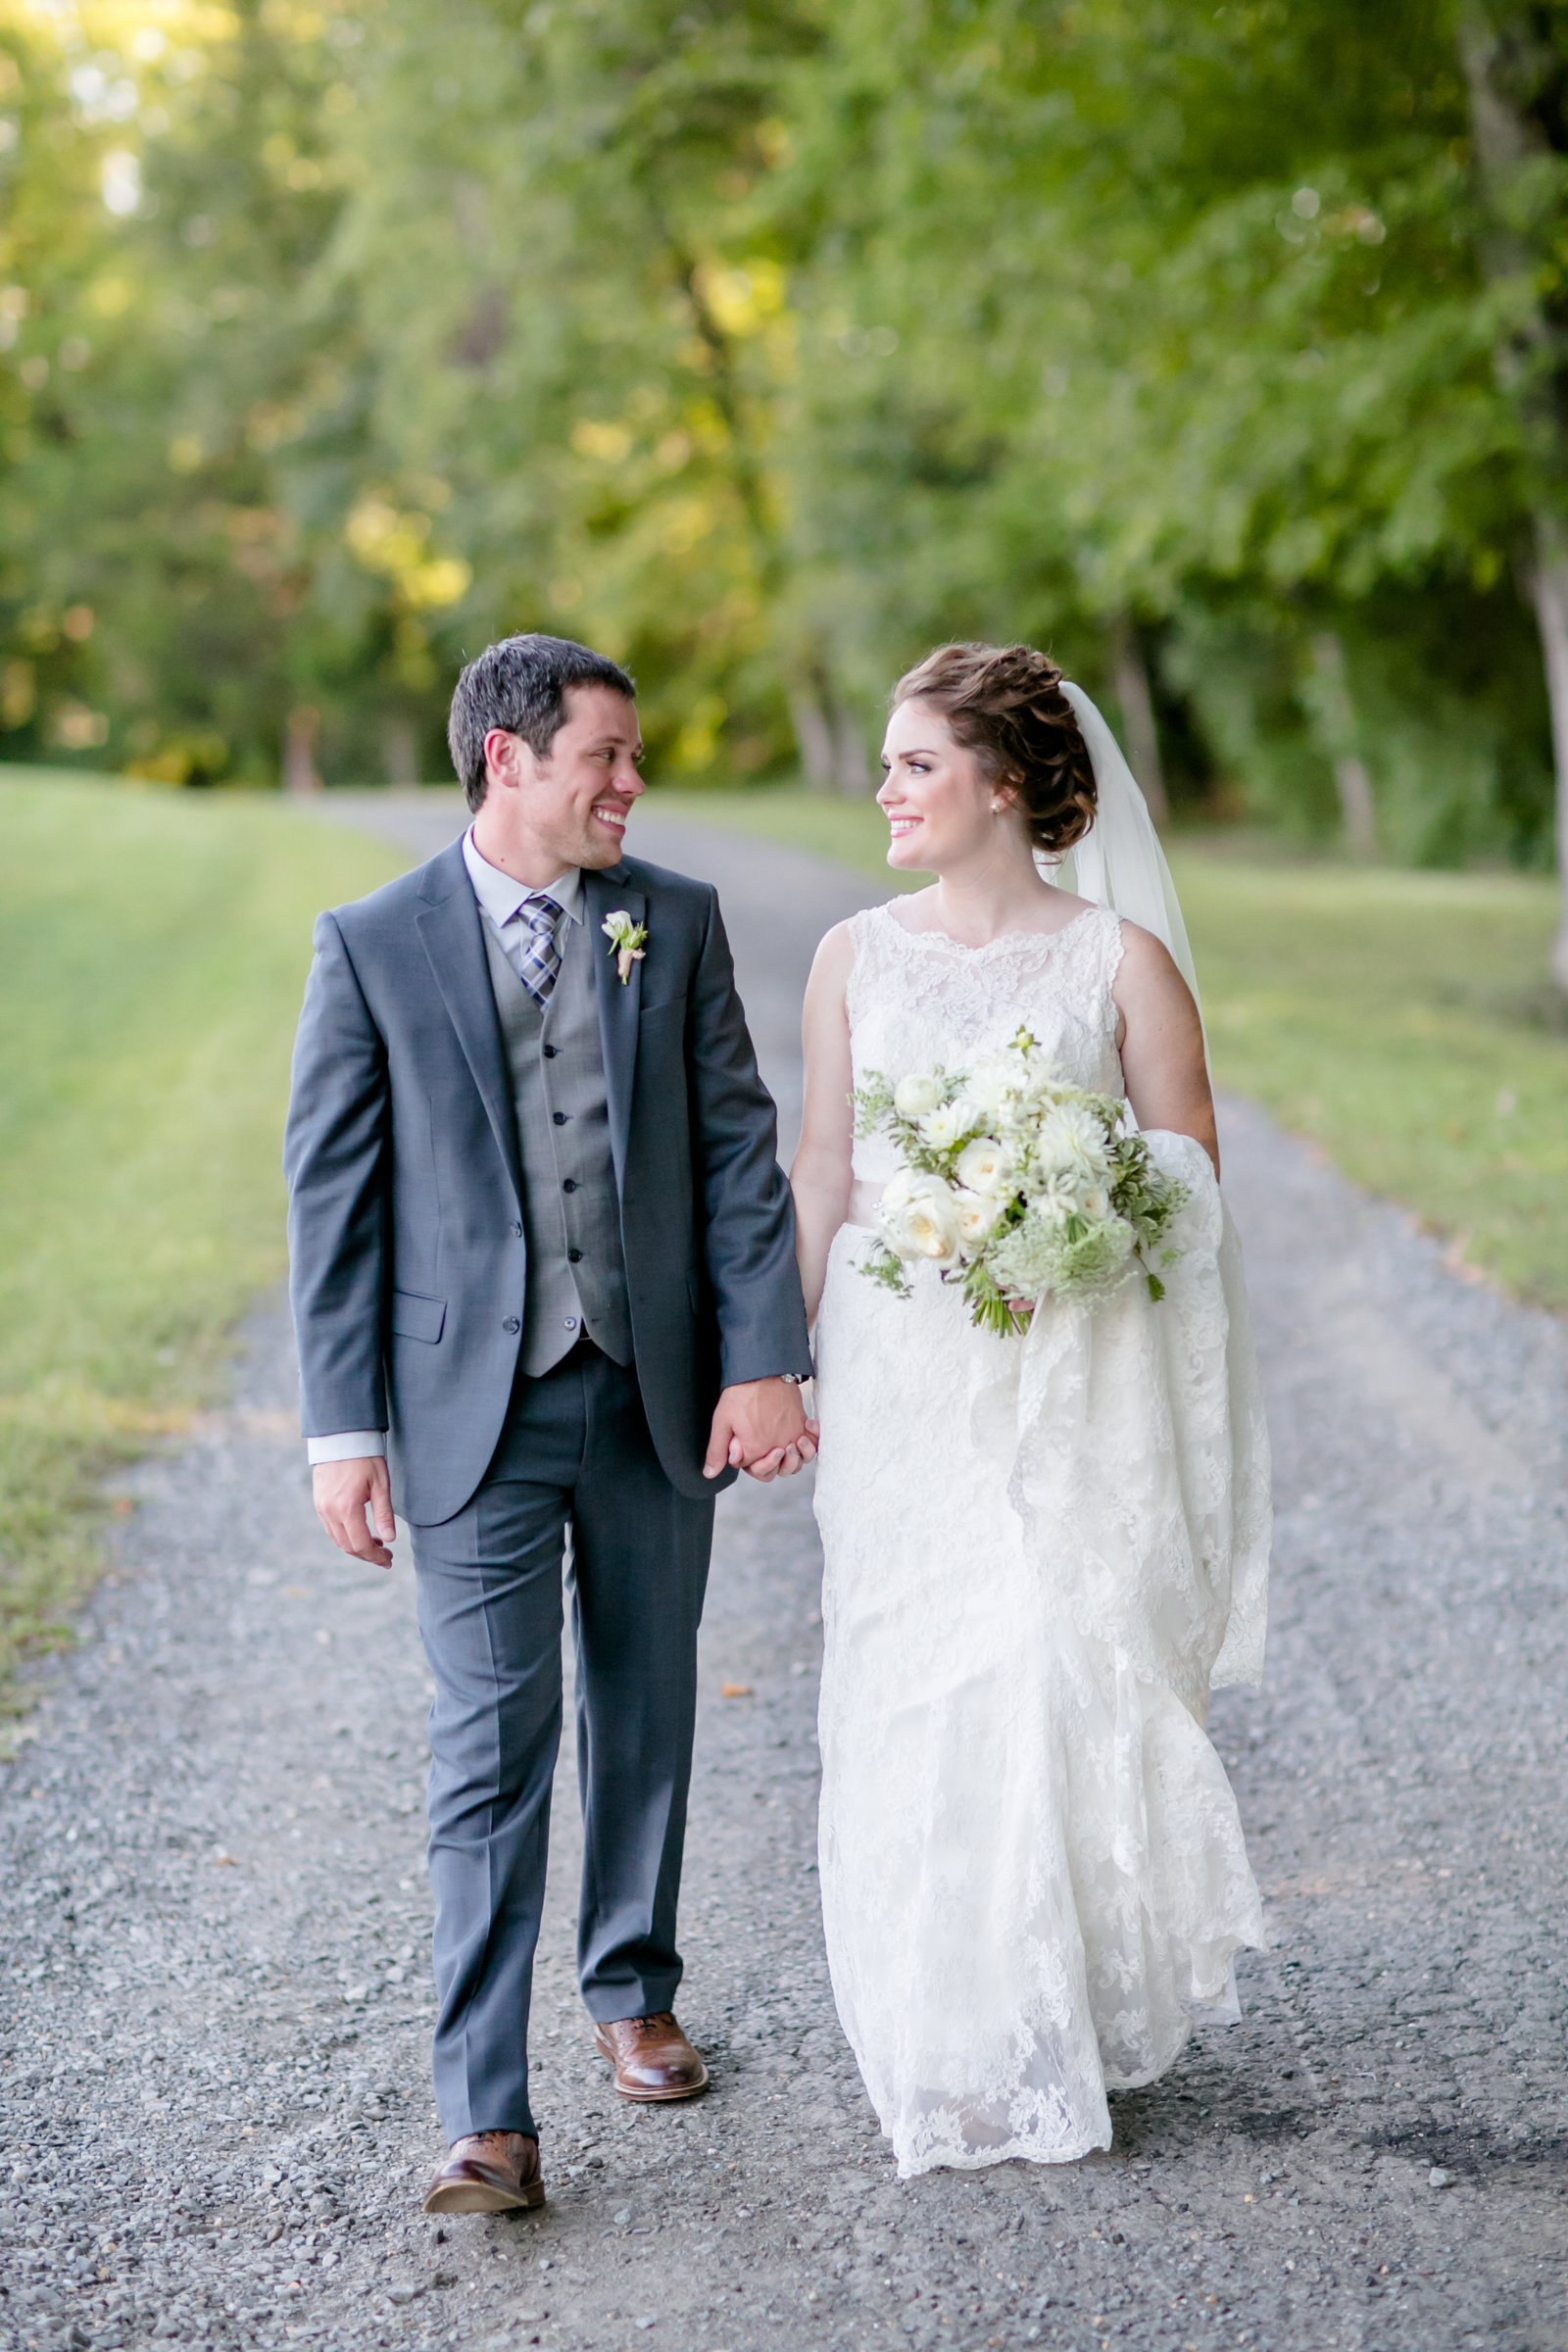 Carley Rehberg Photography - Wedding Photographer - Photo28